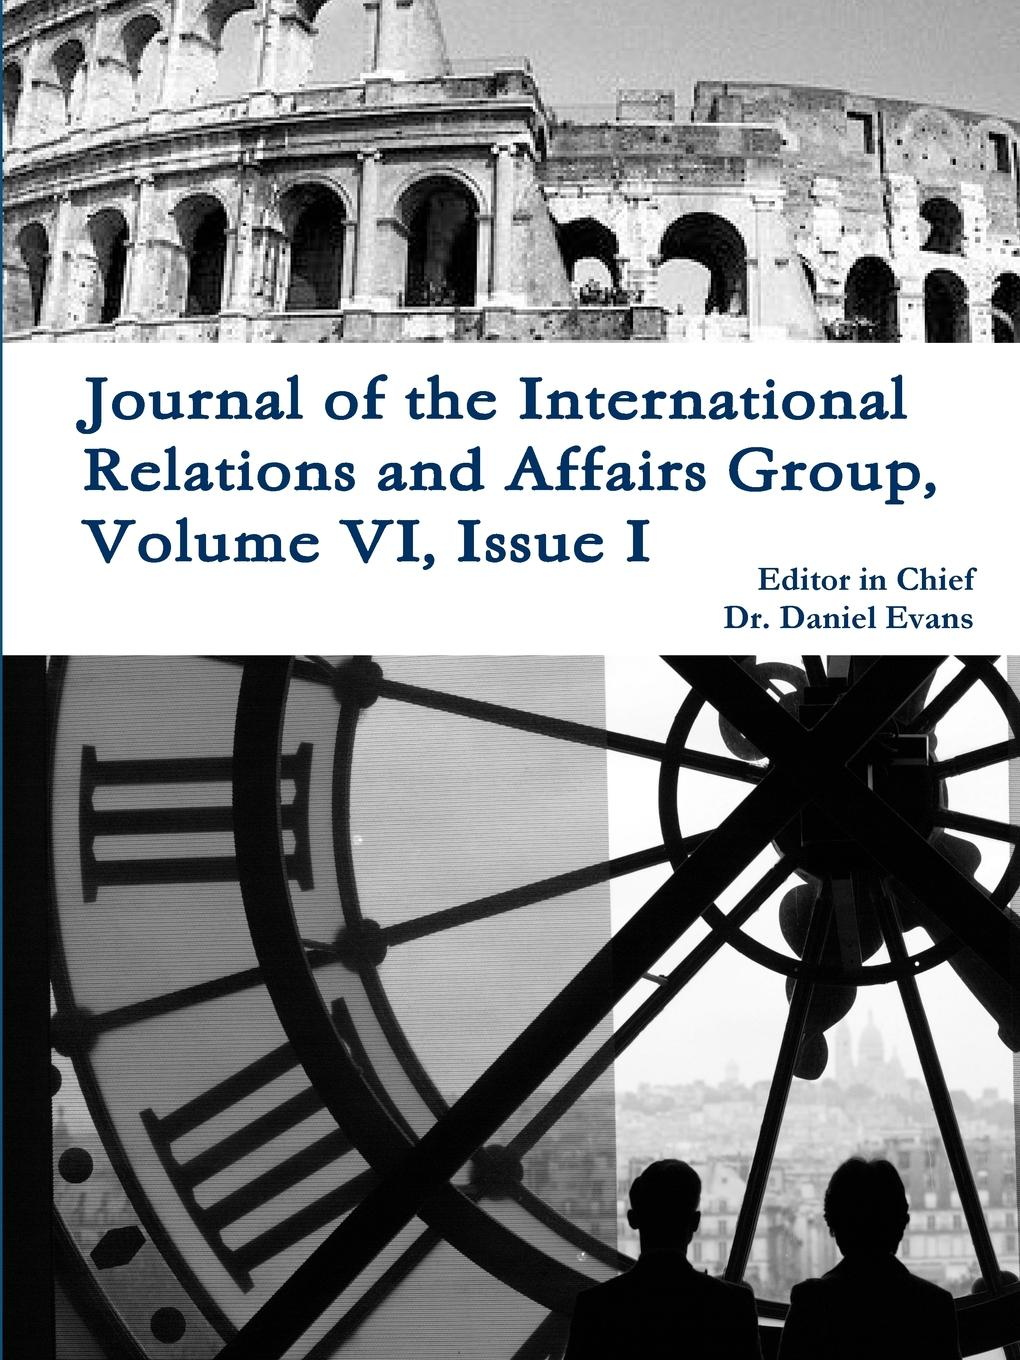 цены на Daniel Evans Journal of the International Relations and Affairs Group, Volume VI, Issue I  в интернет-магазинах